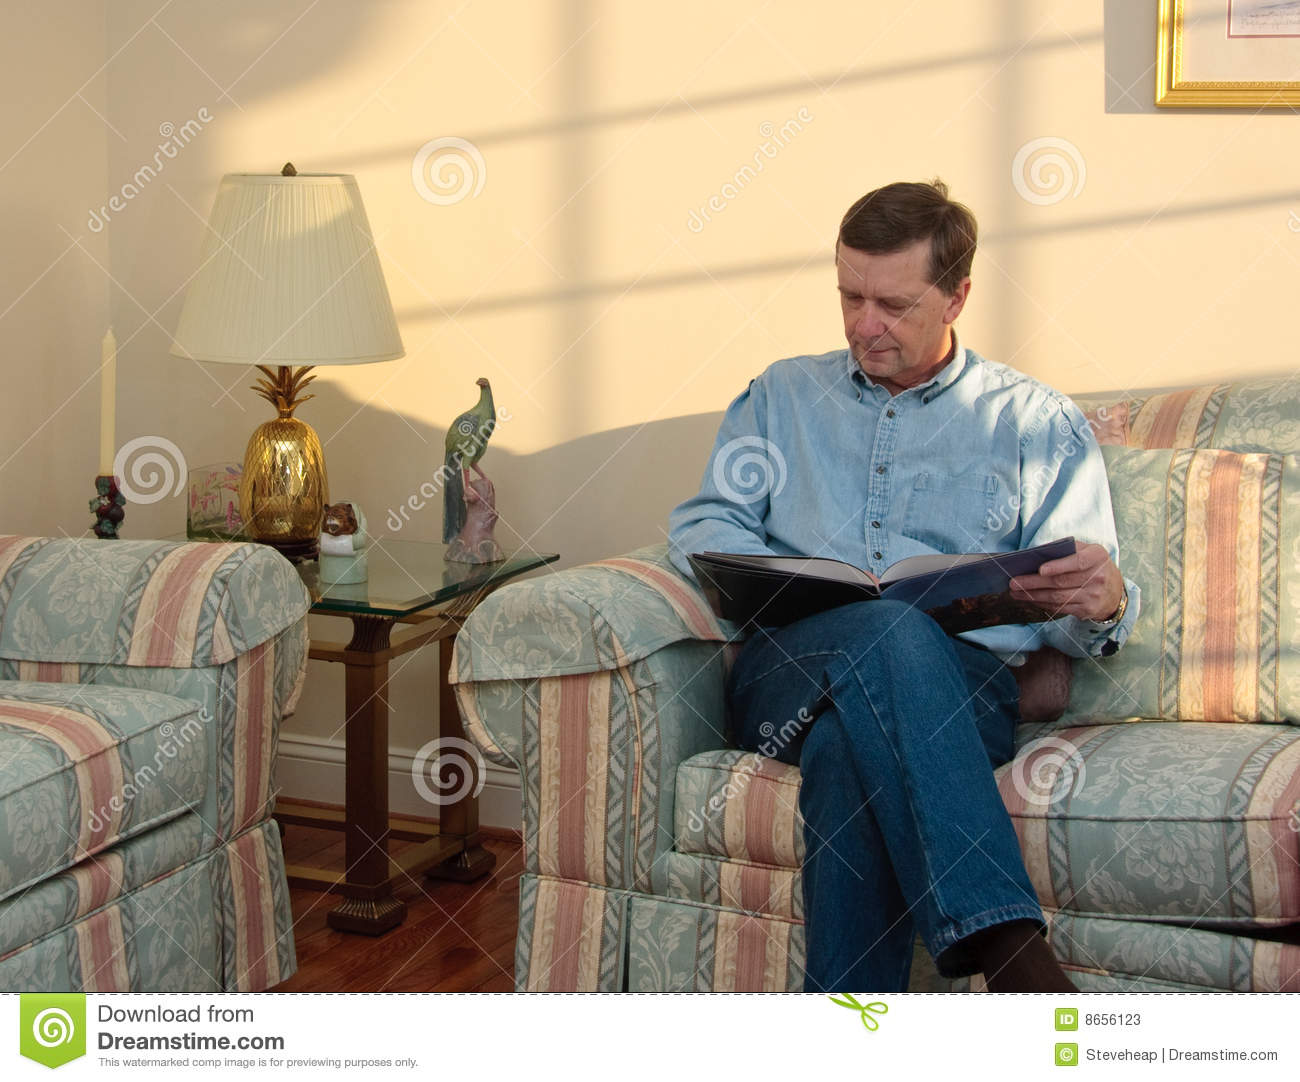 Middle-aged man relaxes on sofa